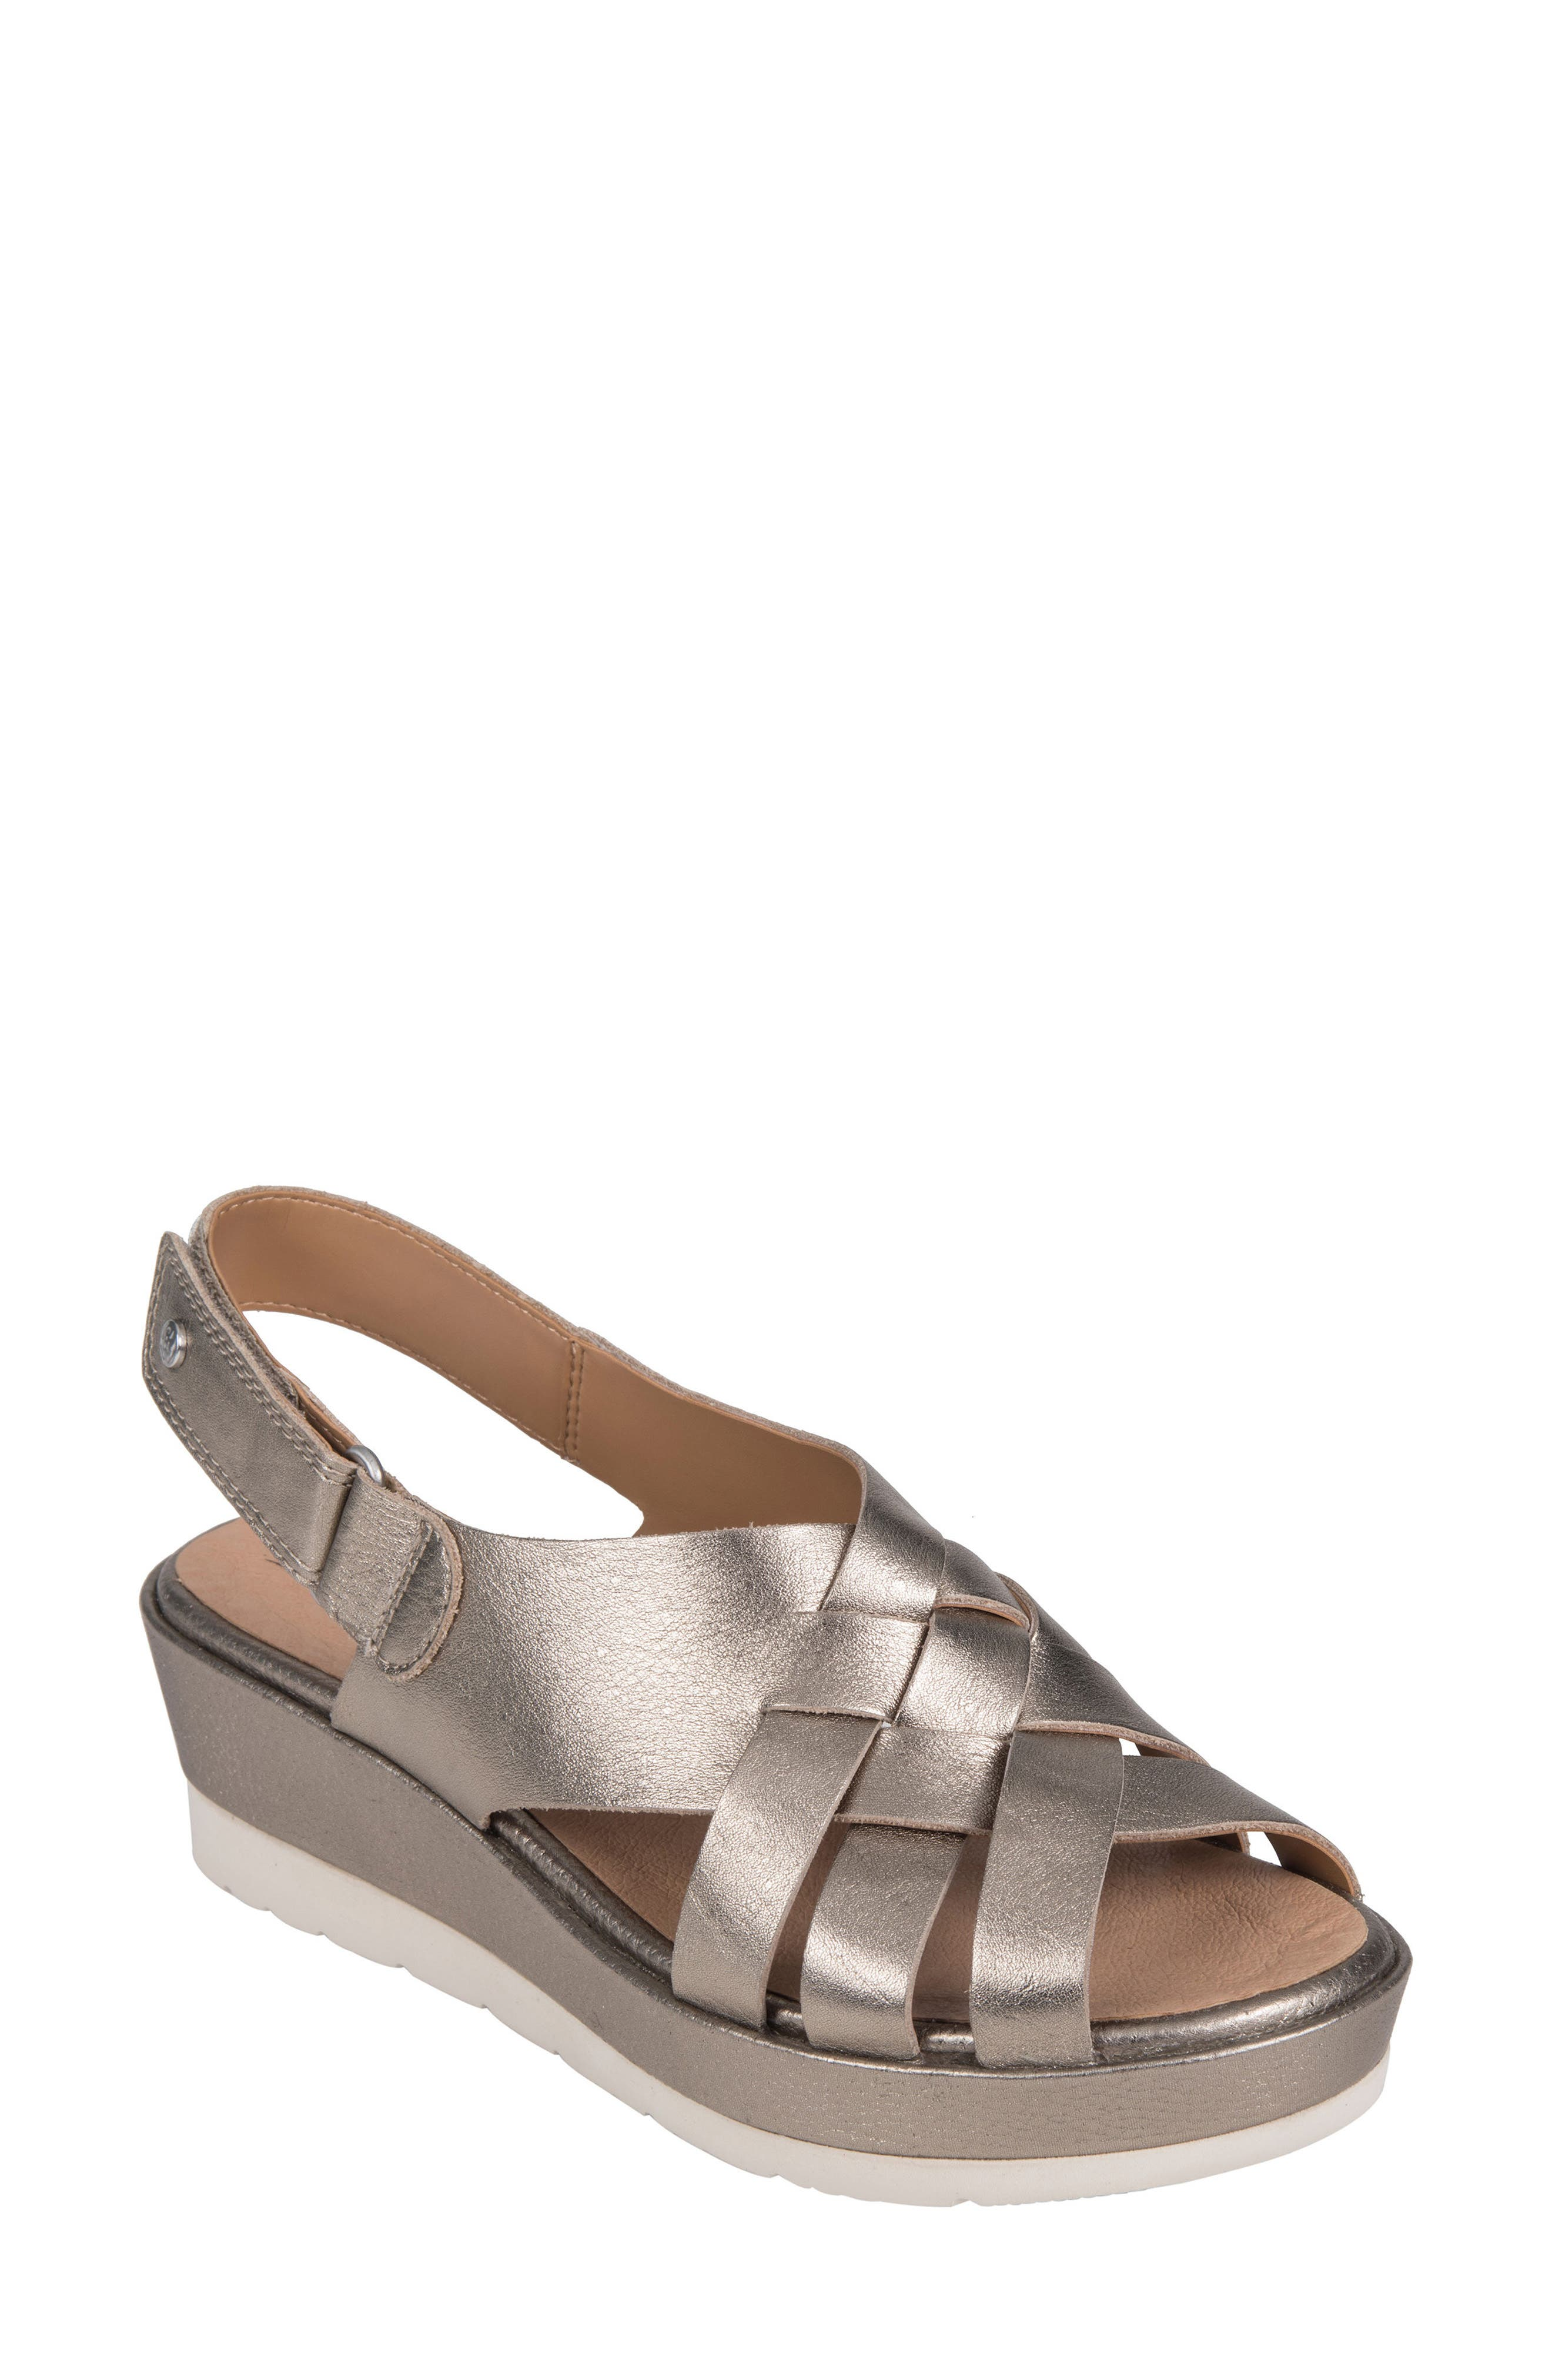 Sunflower Wedge Sandal,                             Main thumbnail 1, color,                             WASHED GOLD METALLIC LEATHER